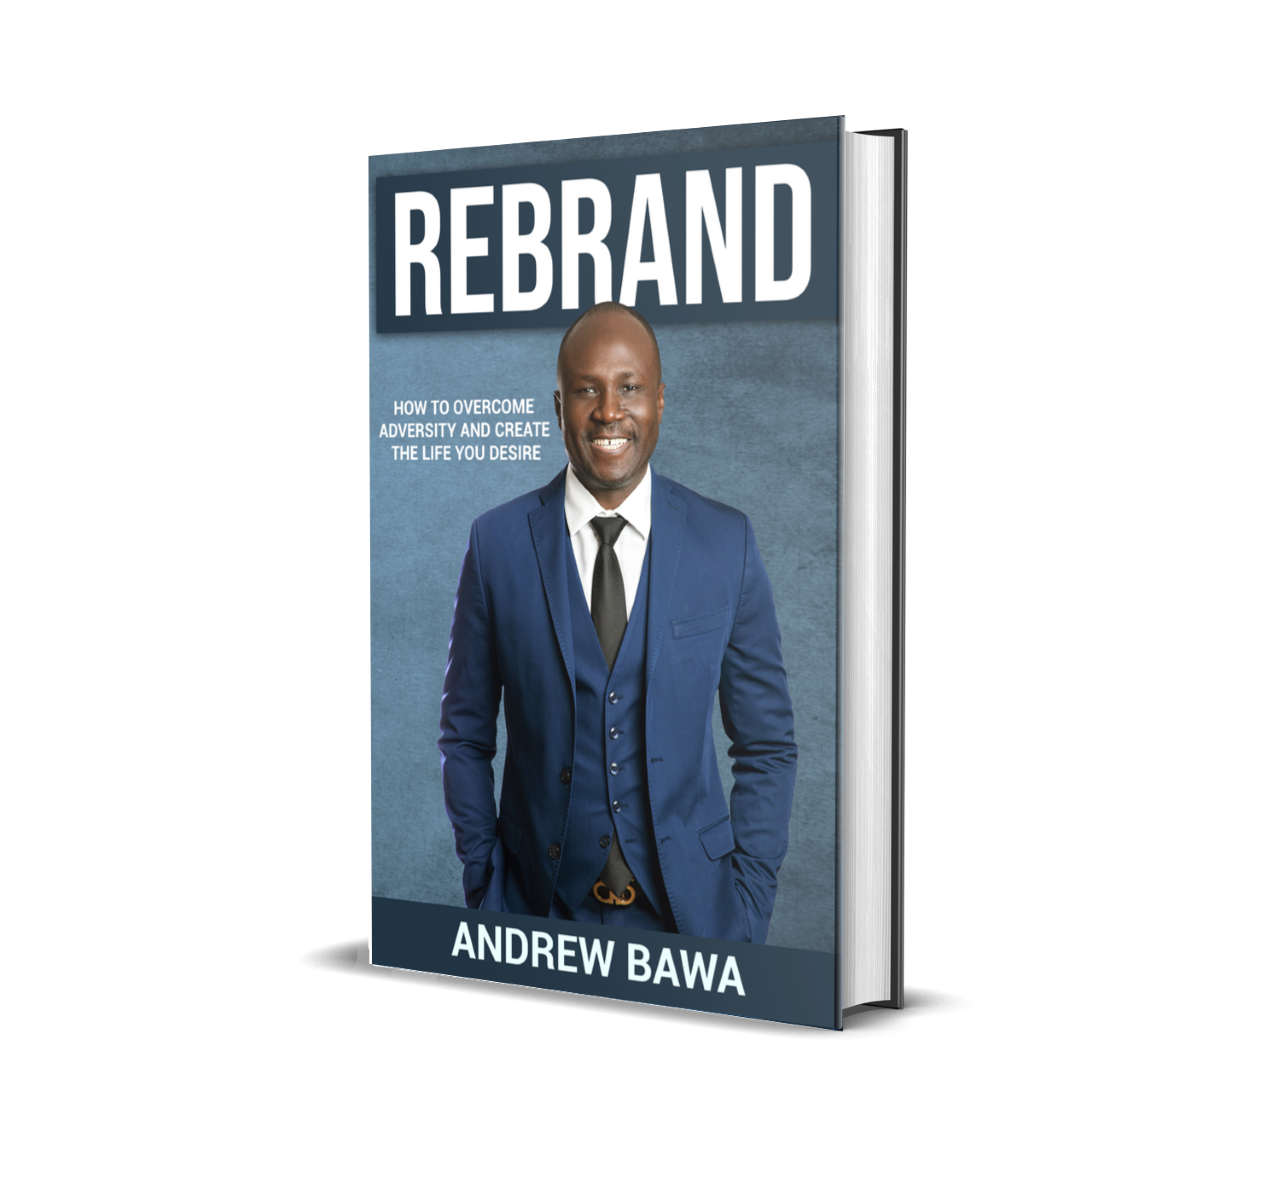 Rebrand, new book by Andrew Bawa